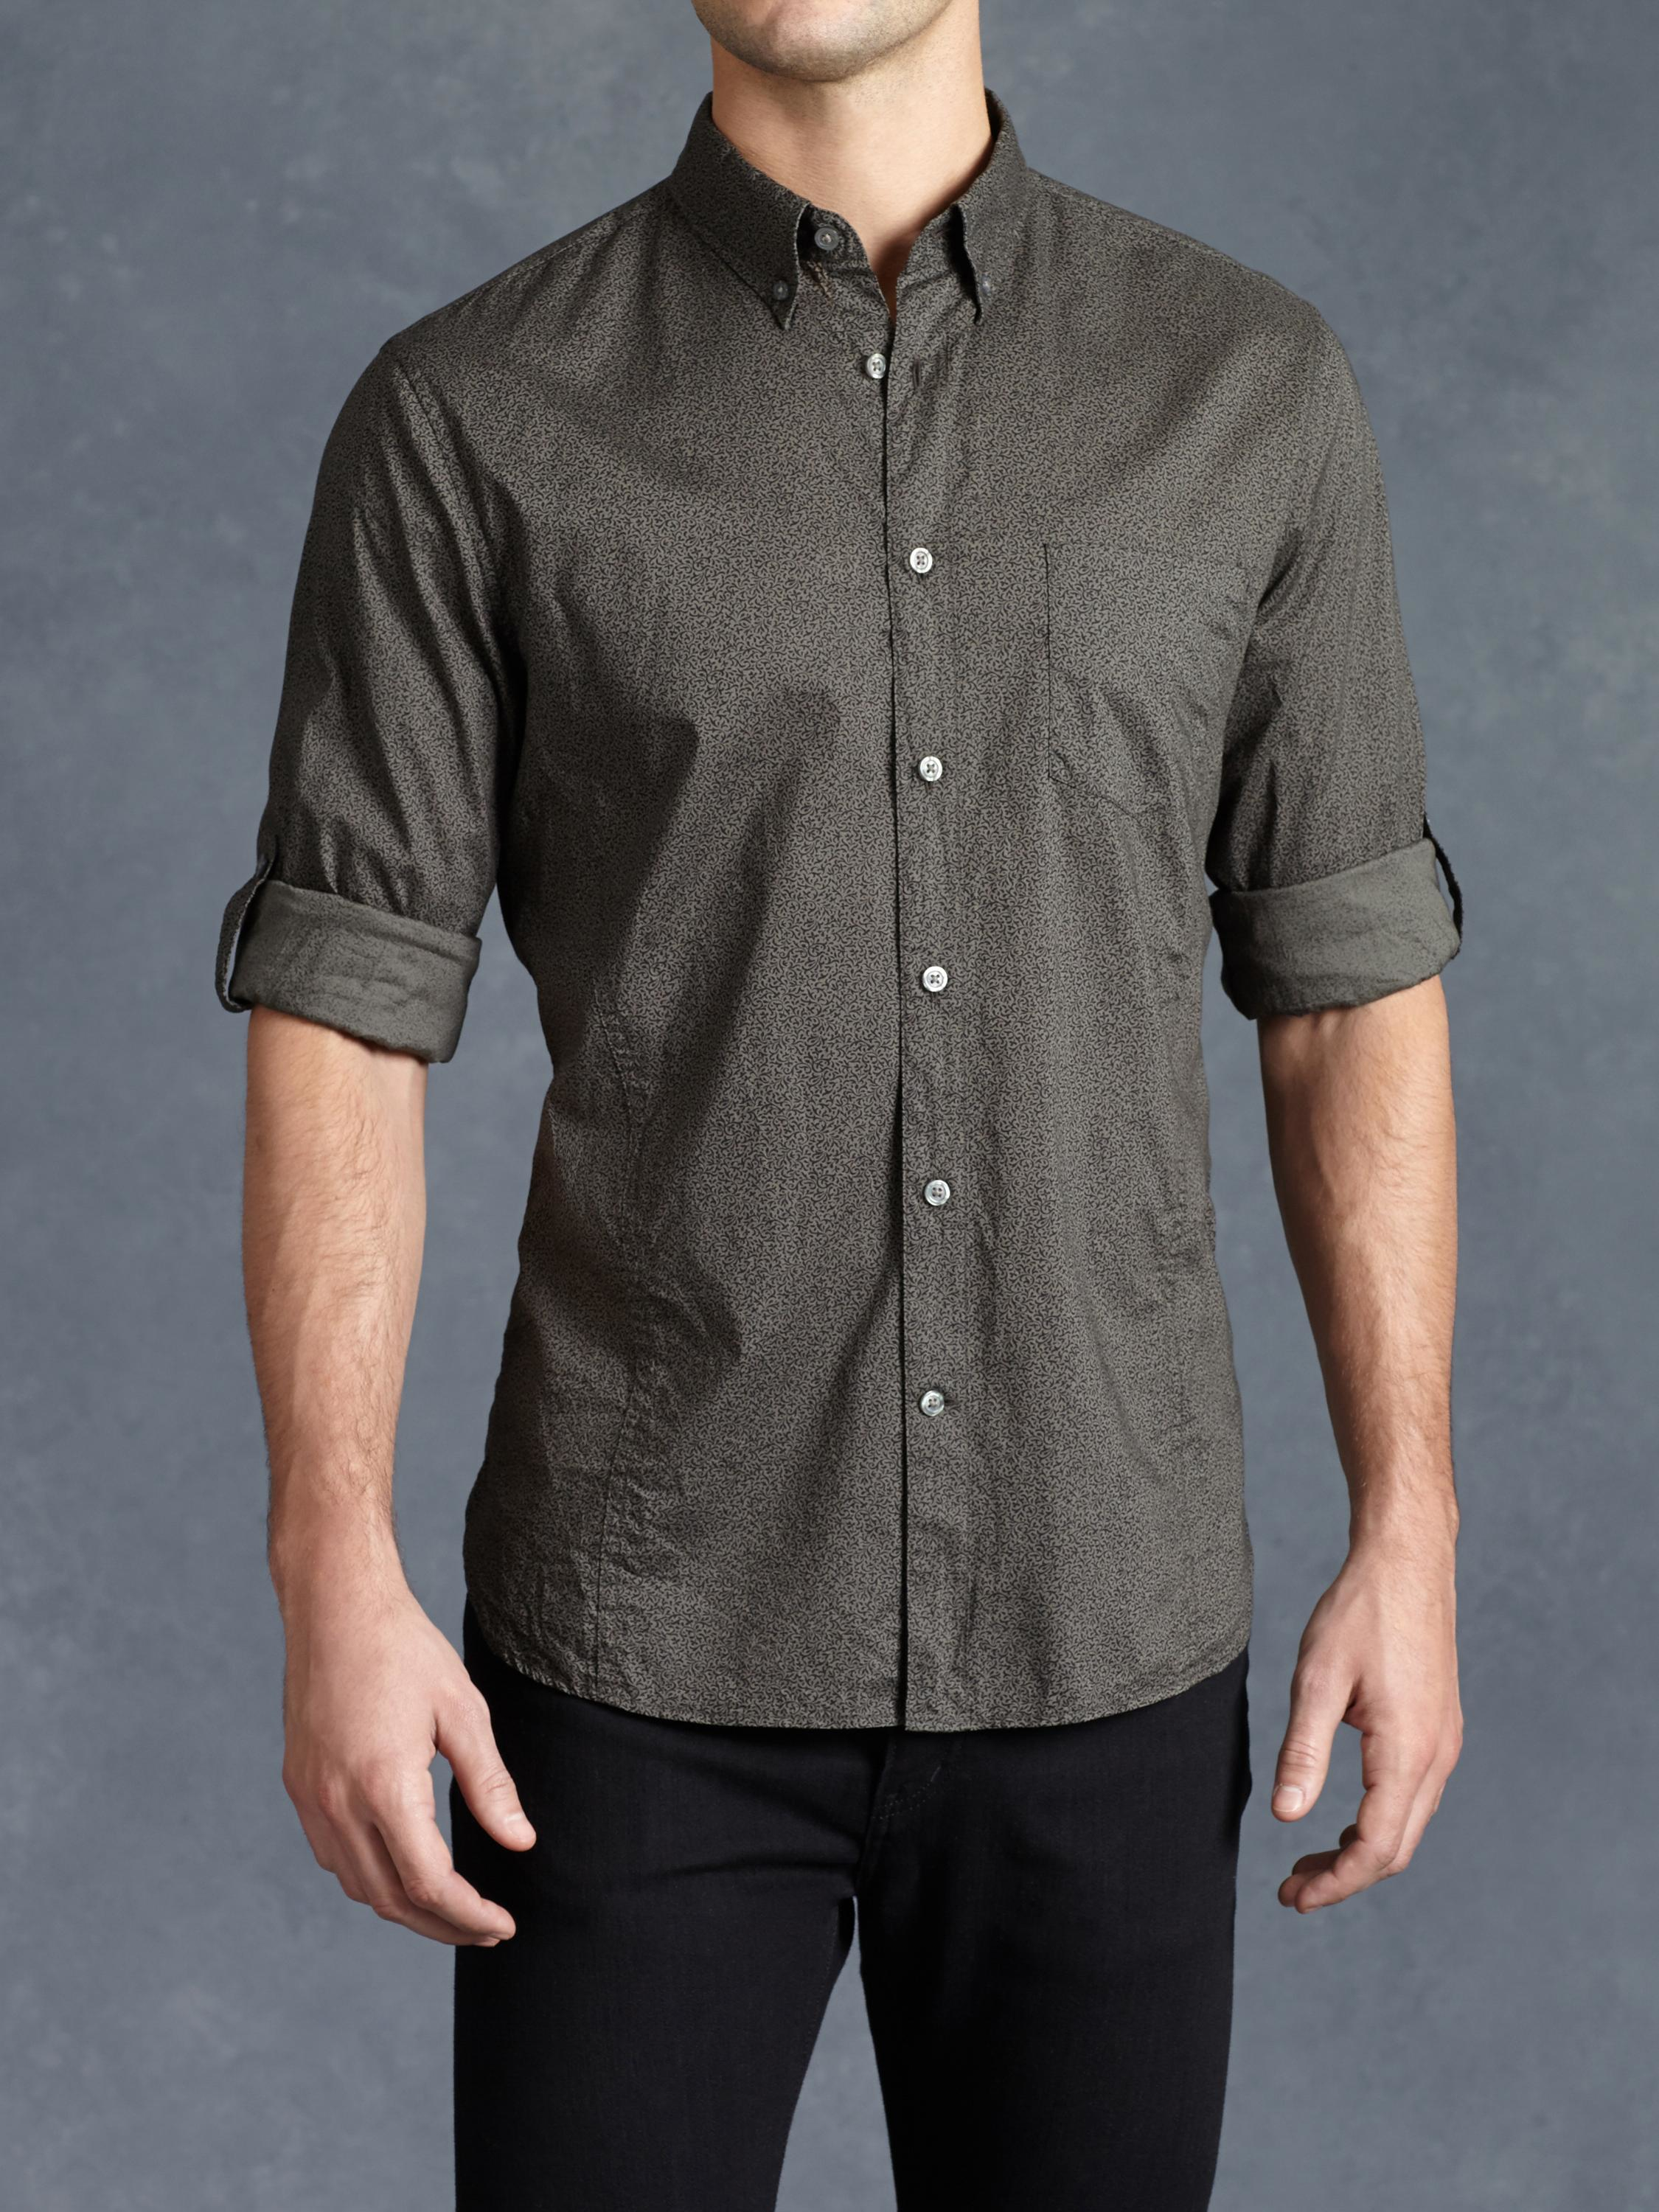 John Varvatos Cotton Abstract Rolled Sleeve Shirt In Gray